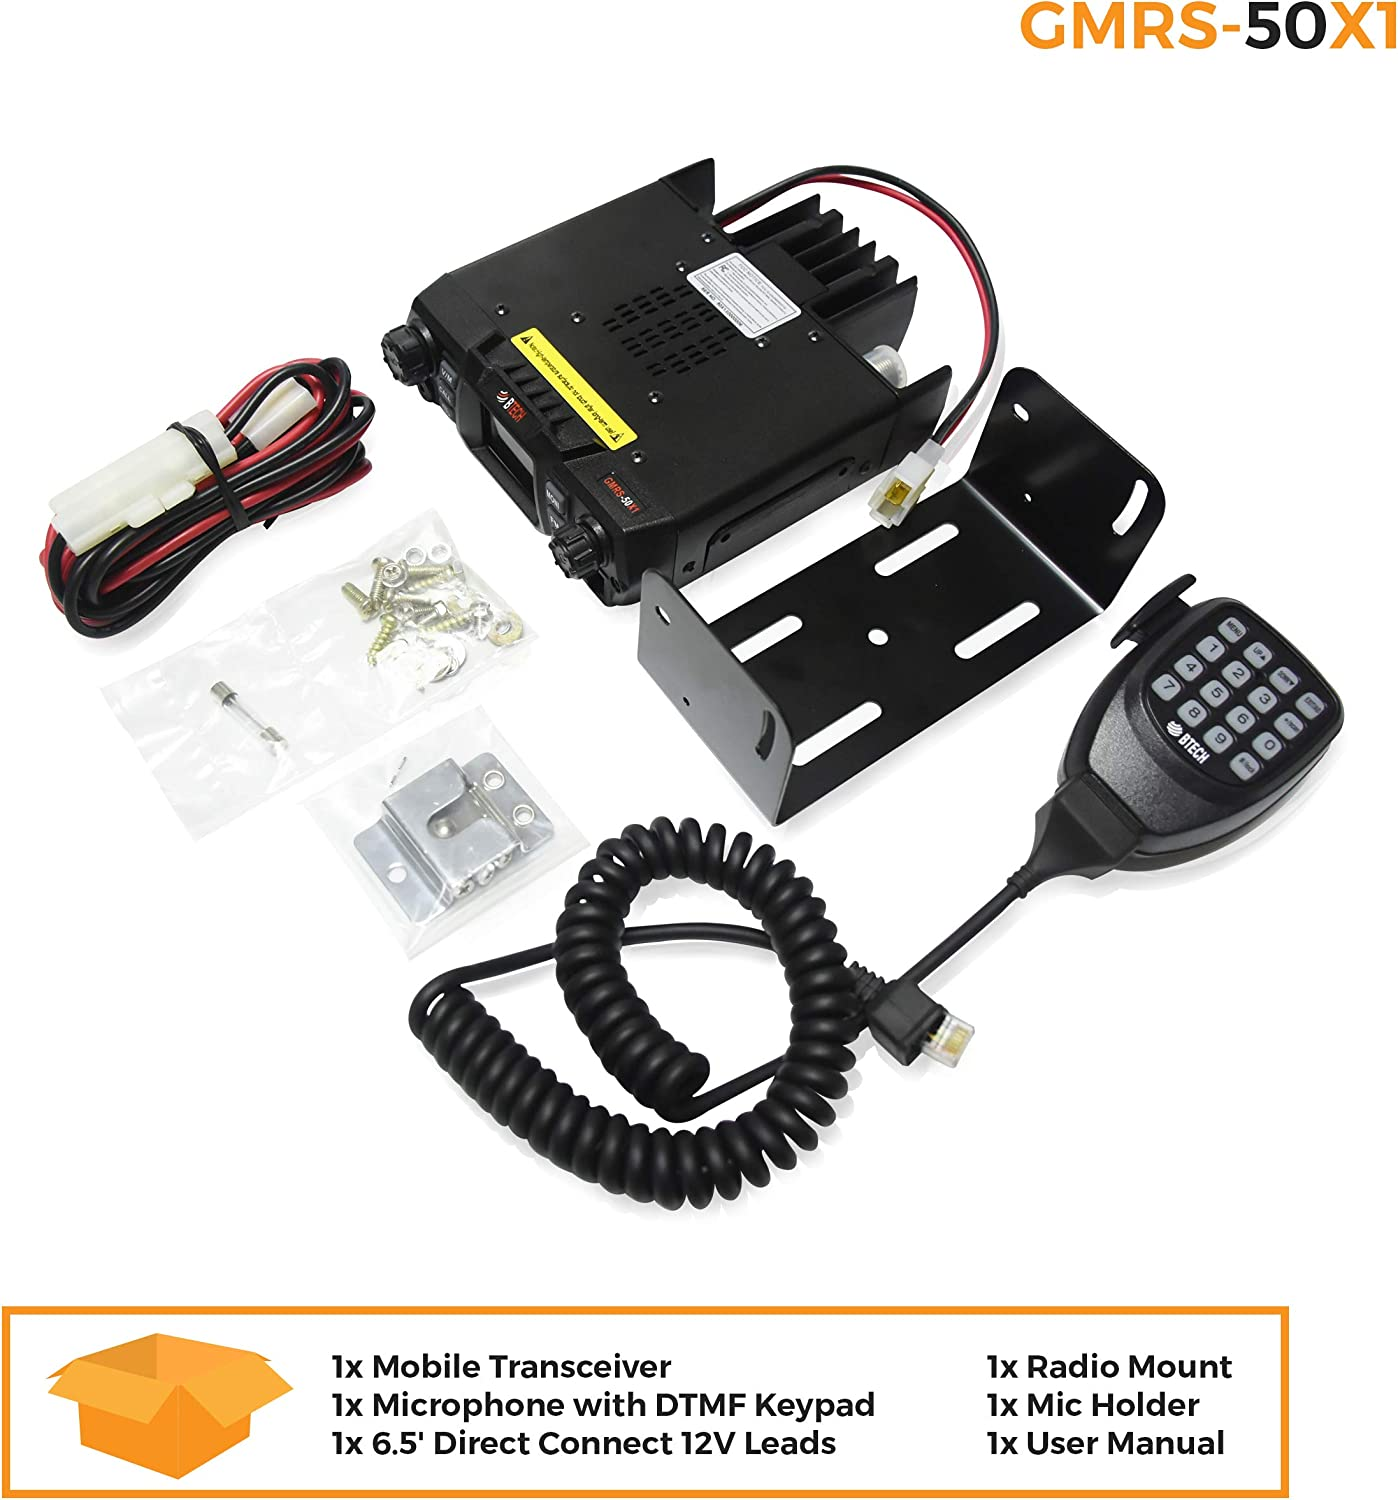 BTECH Mobile GMRS-50X1 50 Watt GMRS Two-Way Radio 136-174.99MHz with Dual Band Scanning Receiver UHF GMRS Repeater Capable VHF 400-520.99MHz